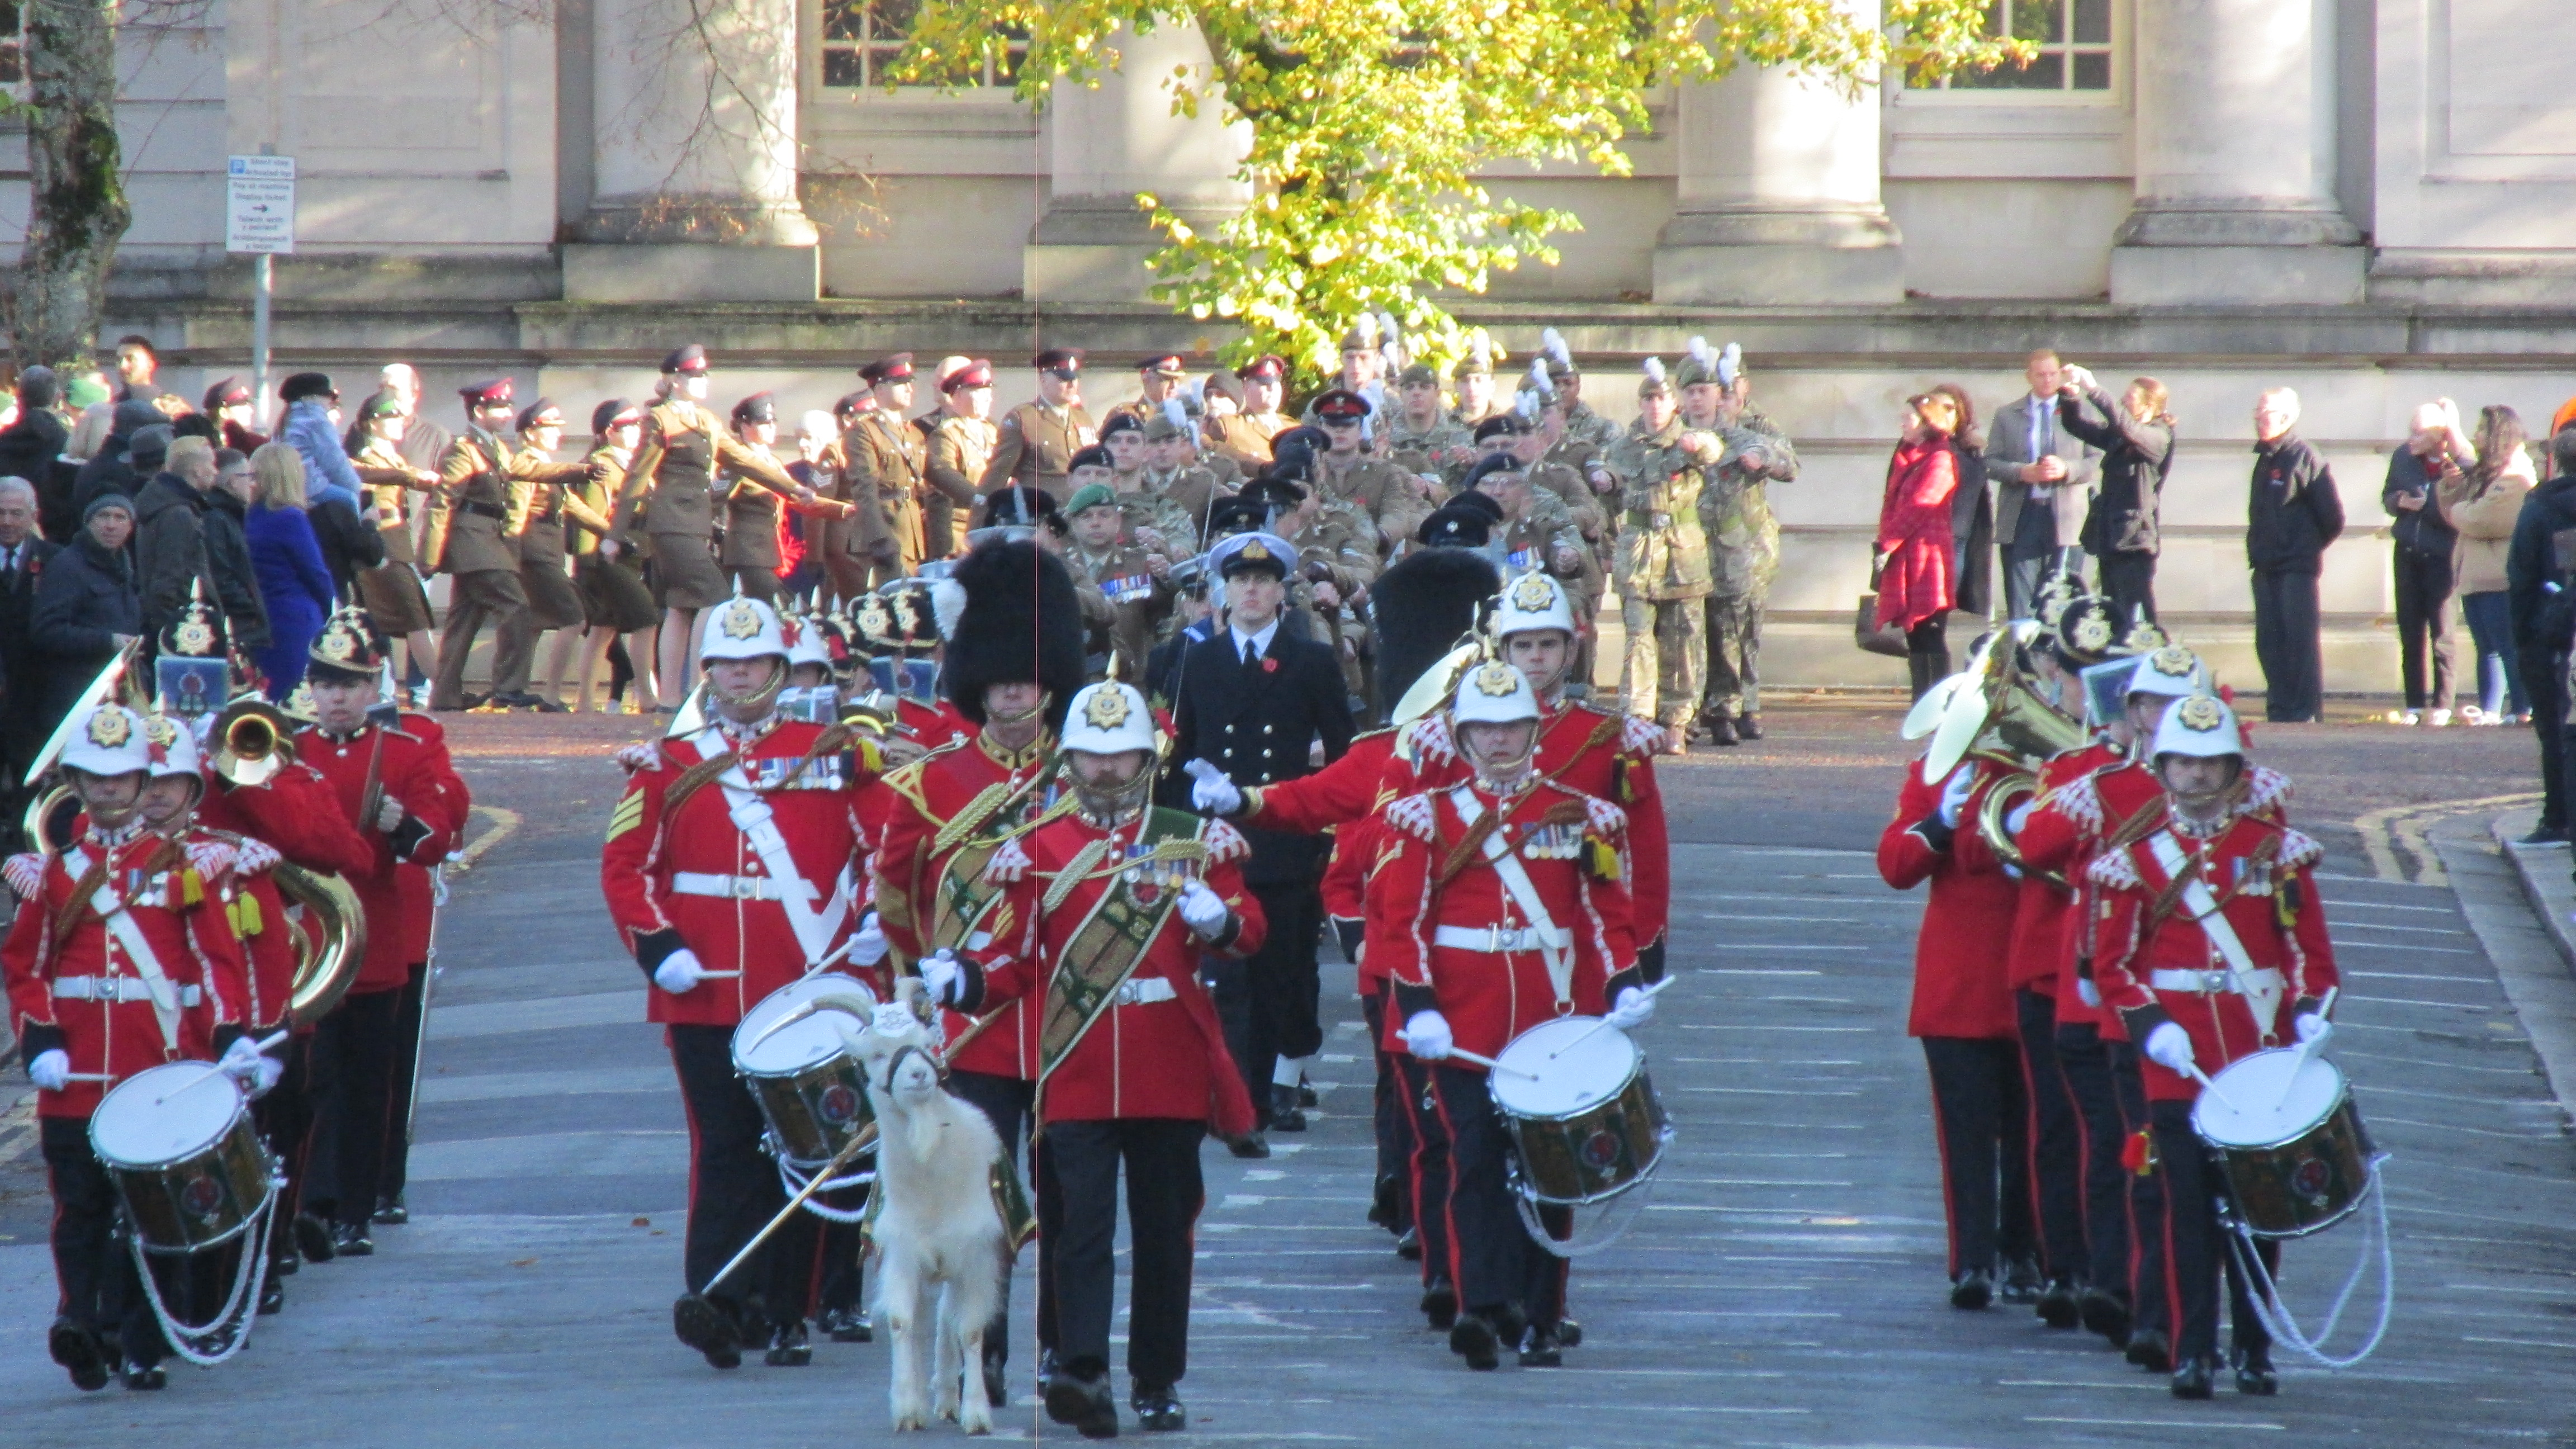 The Regimental Band and Corps of Drums of the Royal Welsh